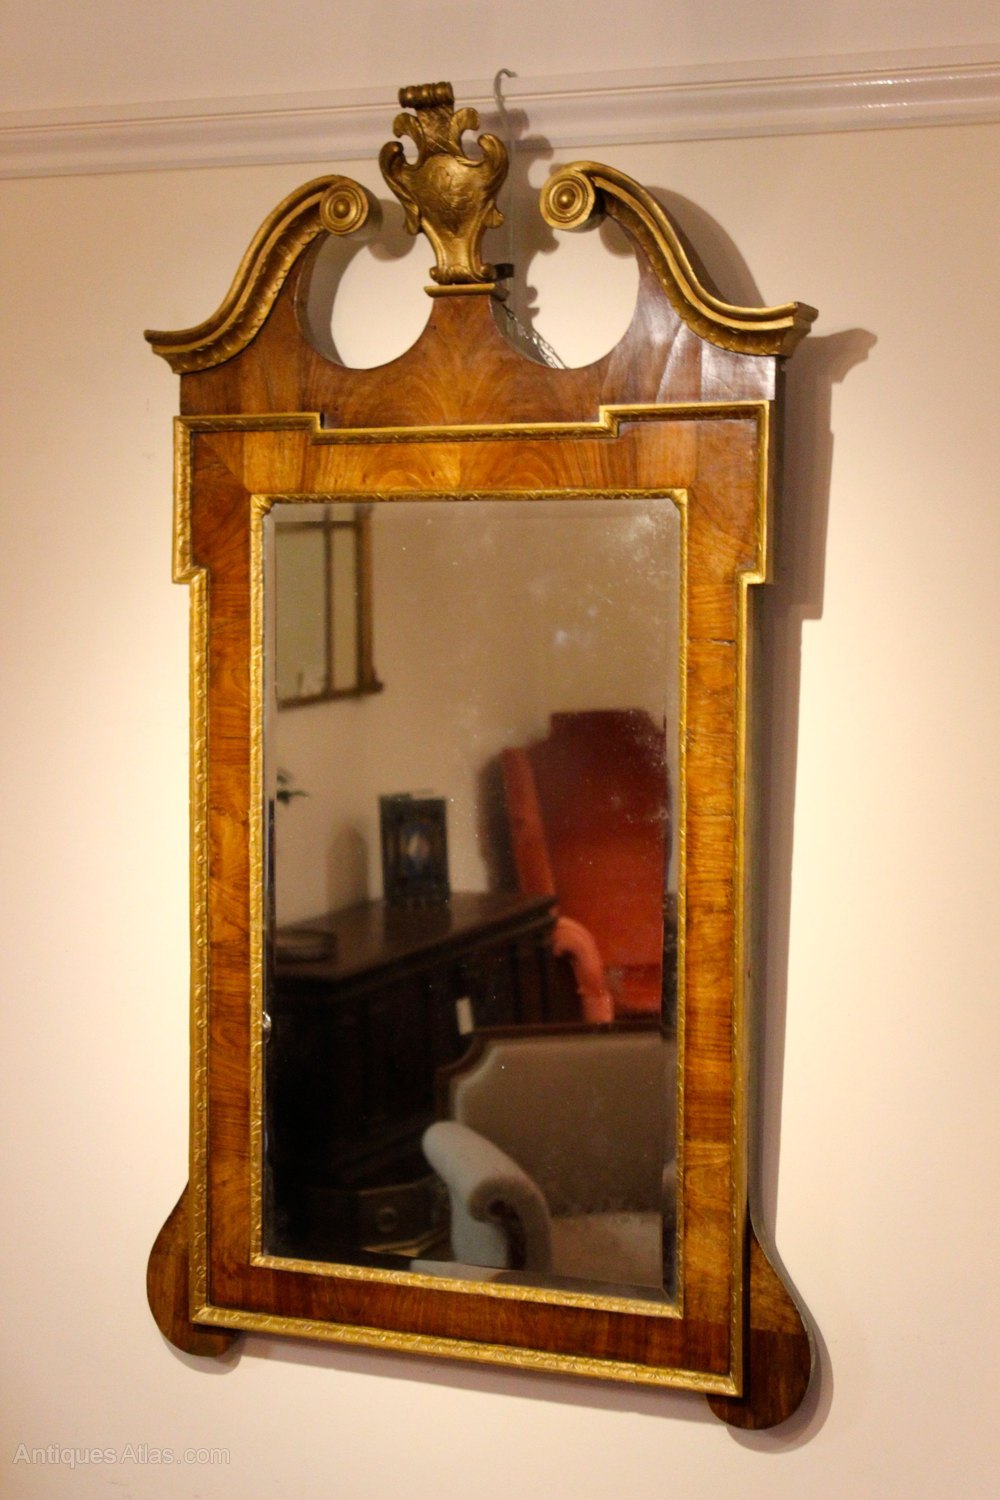 Antiques atlas 19thc walnut gilt wall mirror for Antique wall mirrors